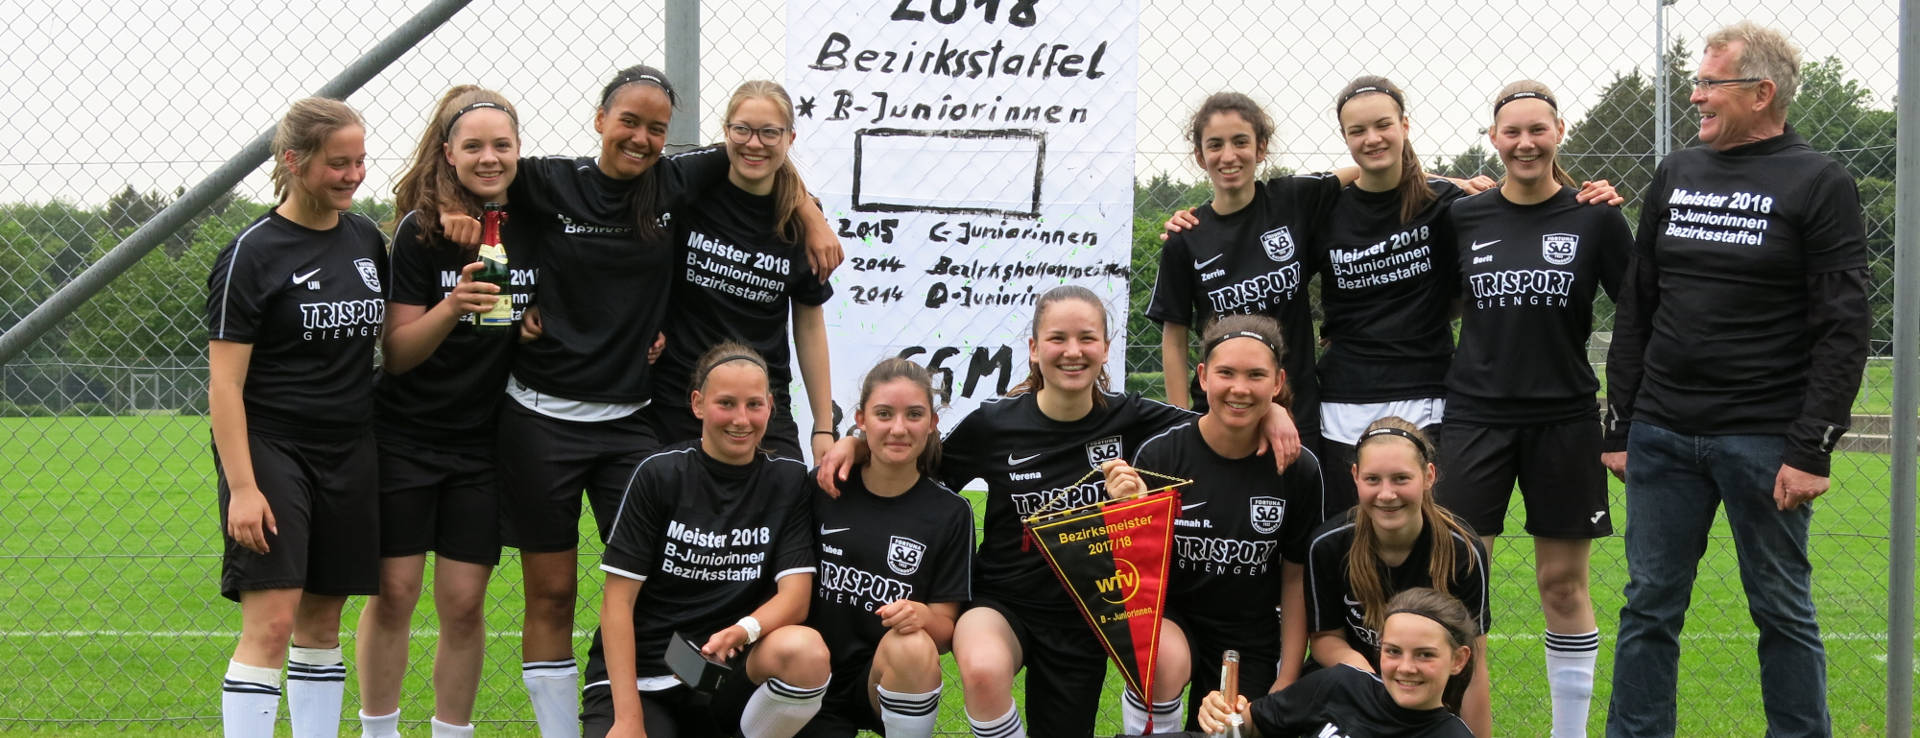 B-Juniorinnen Meisterschaft 2018